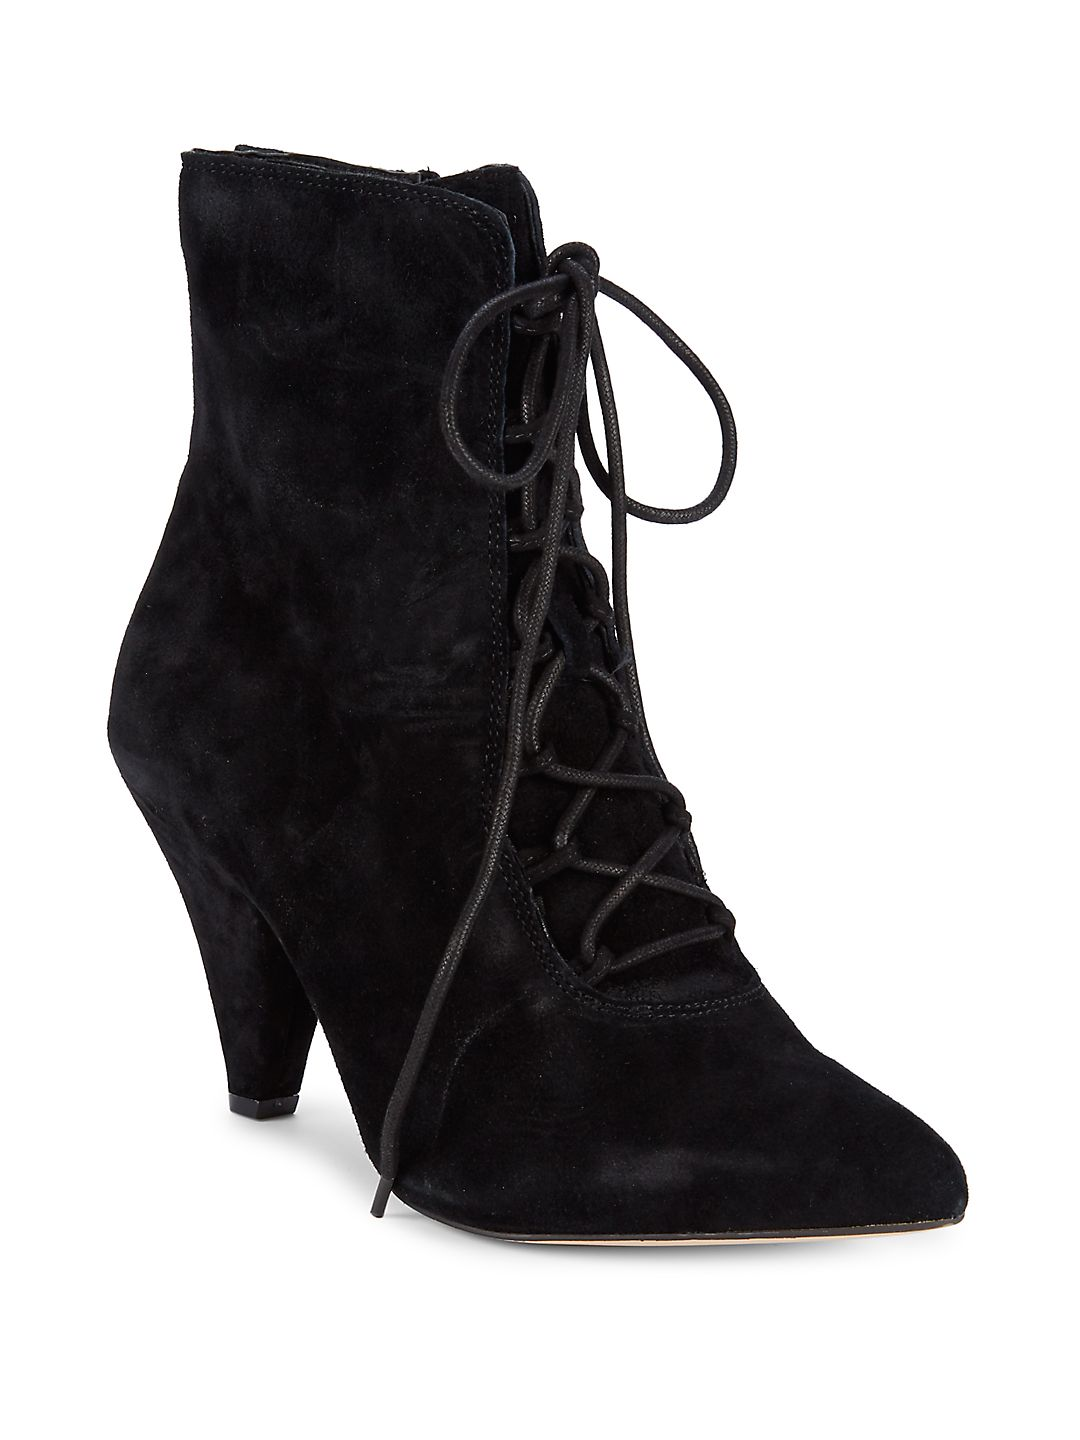 Classic Suede Point-Toe Booties